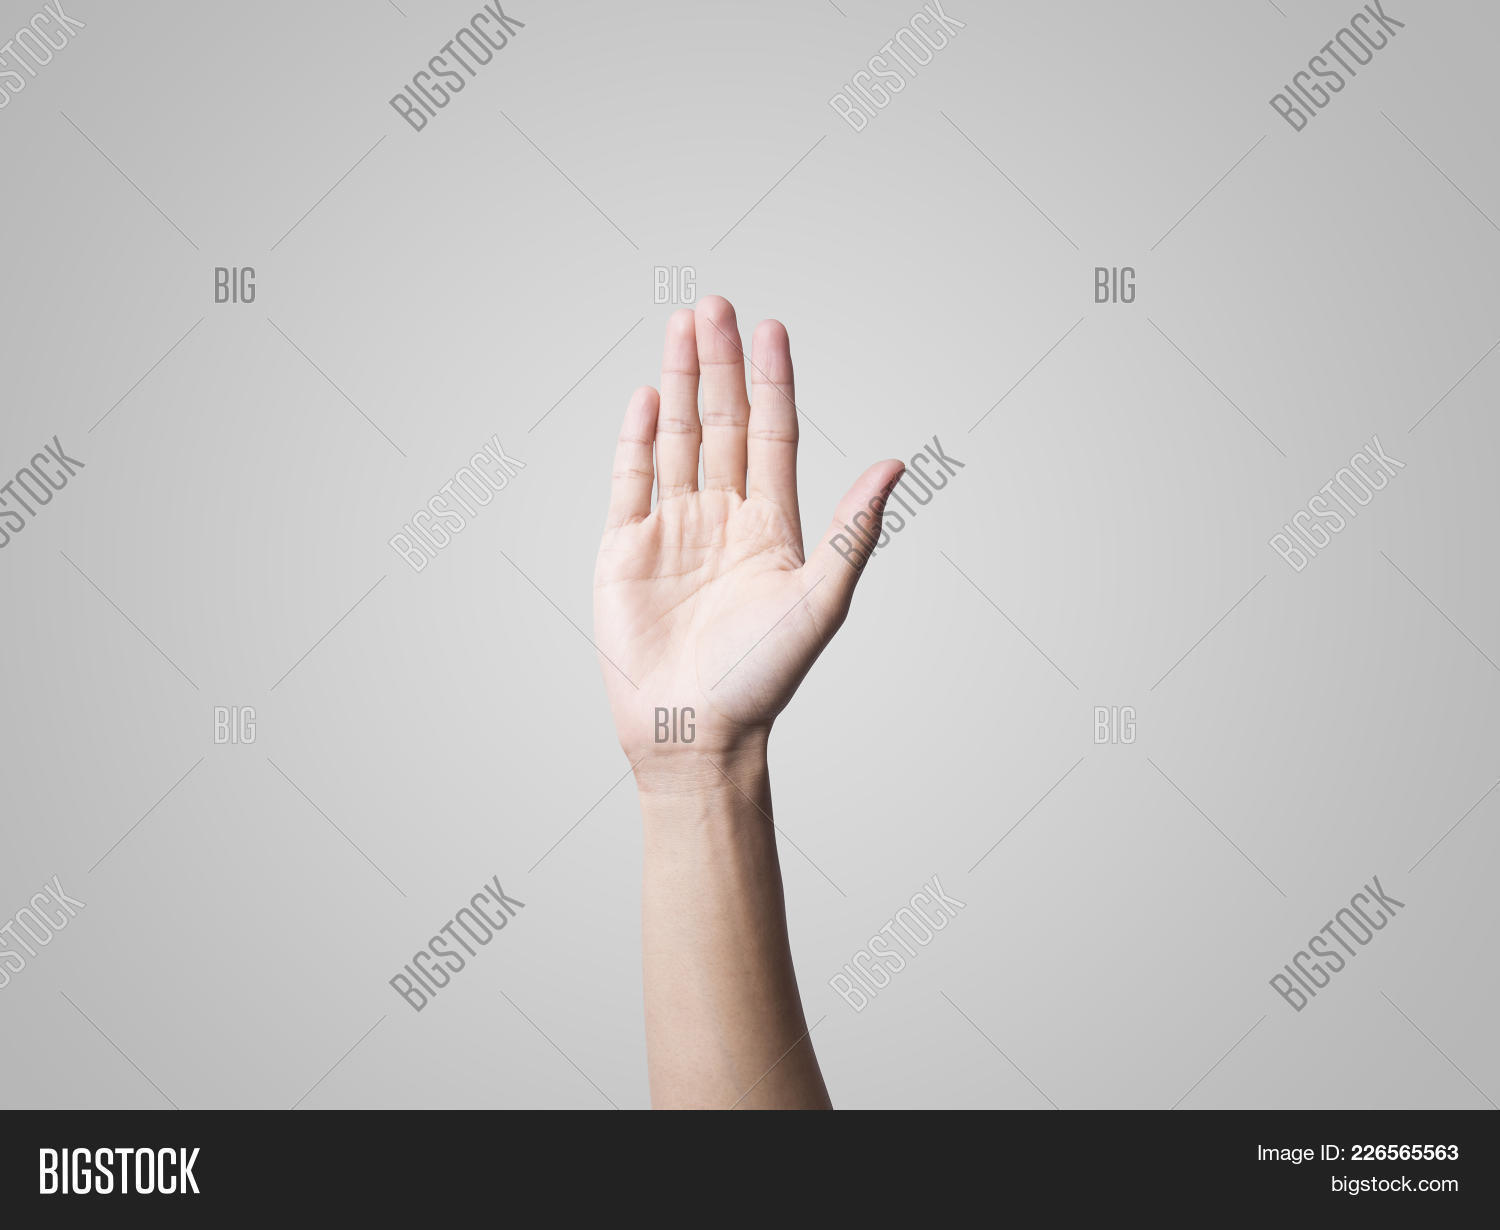 hands high powerpoint template hands high powerpoint background